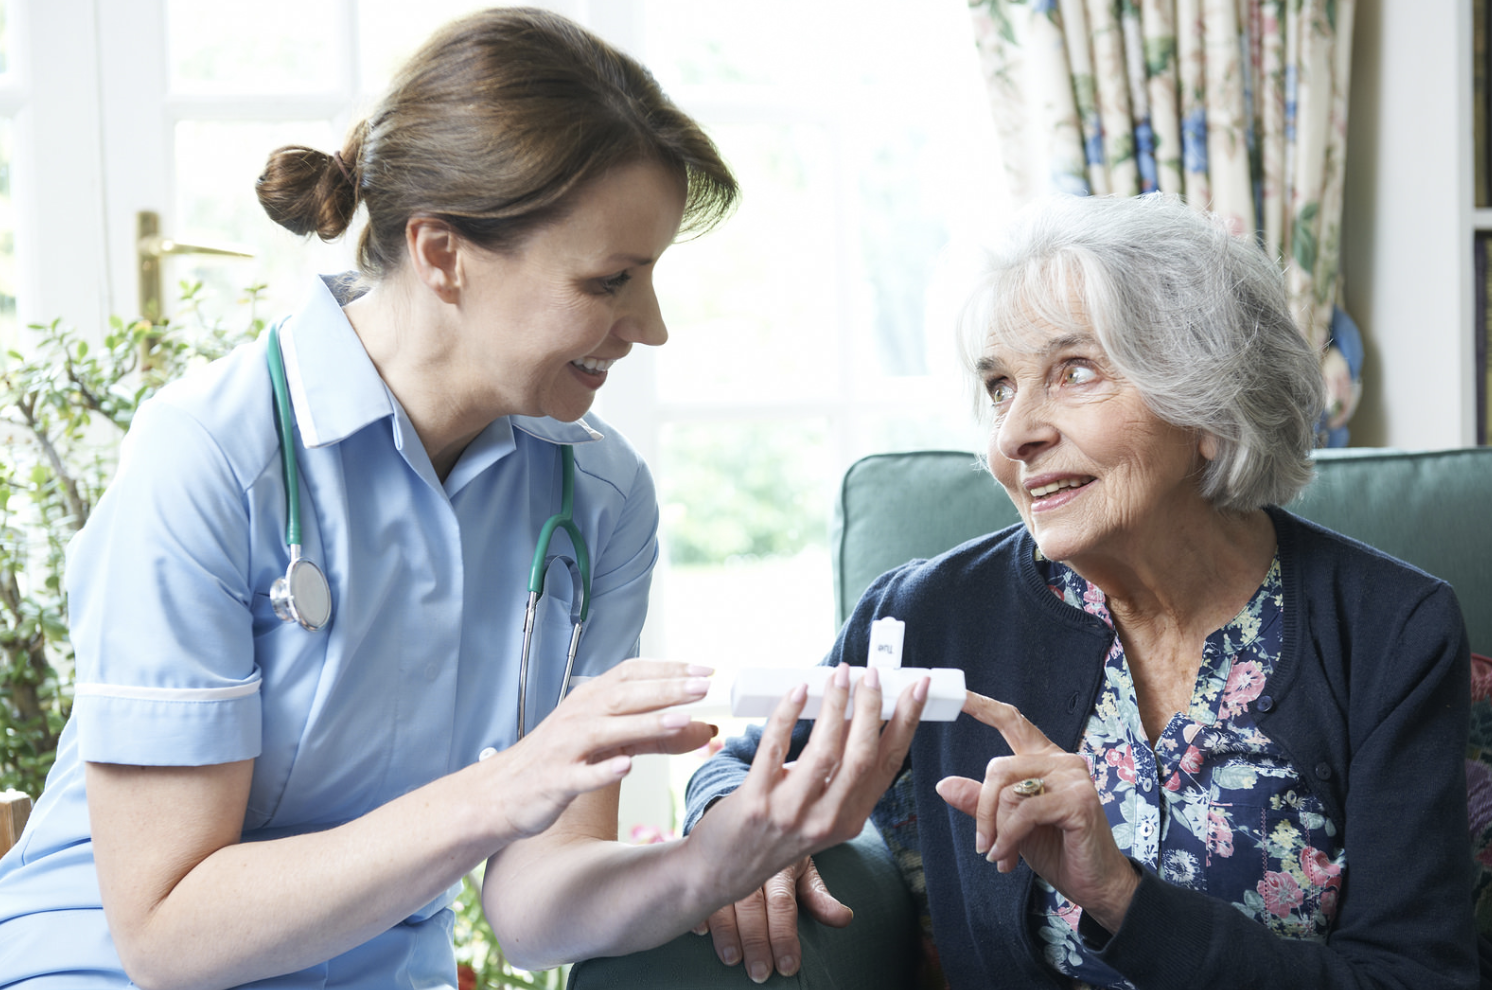 caregiver duties- Caregiver giving medicine to an elderly